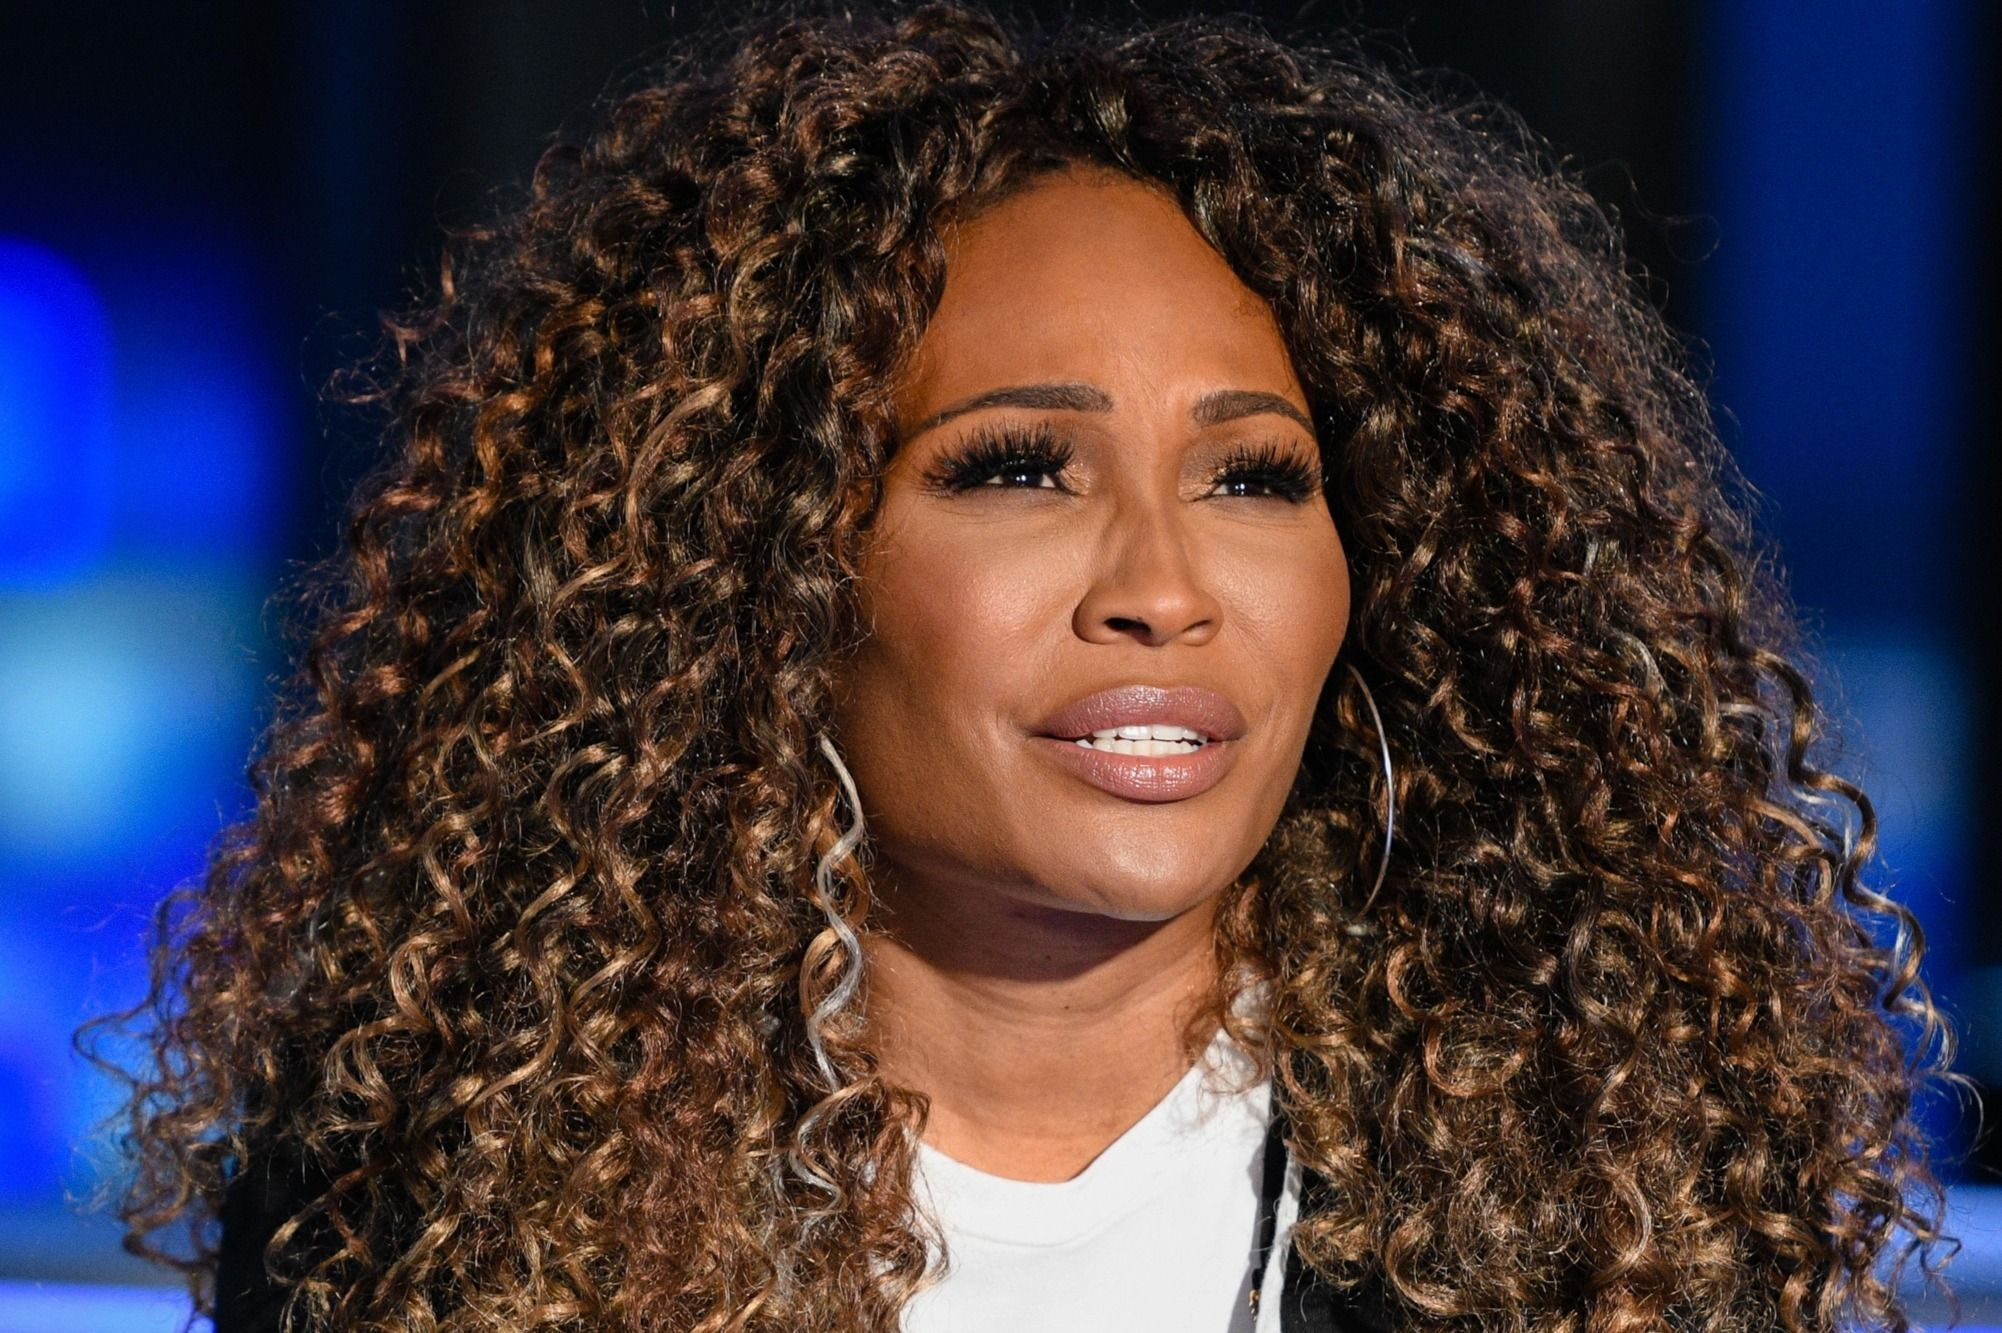 Cynthia Bailey Tells Her Fans To Appreciate The Small Things